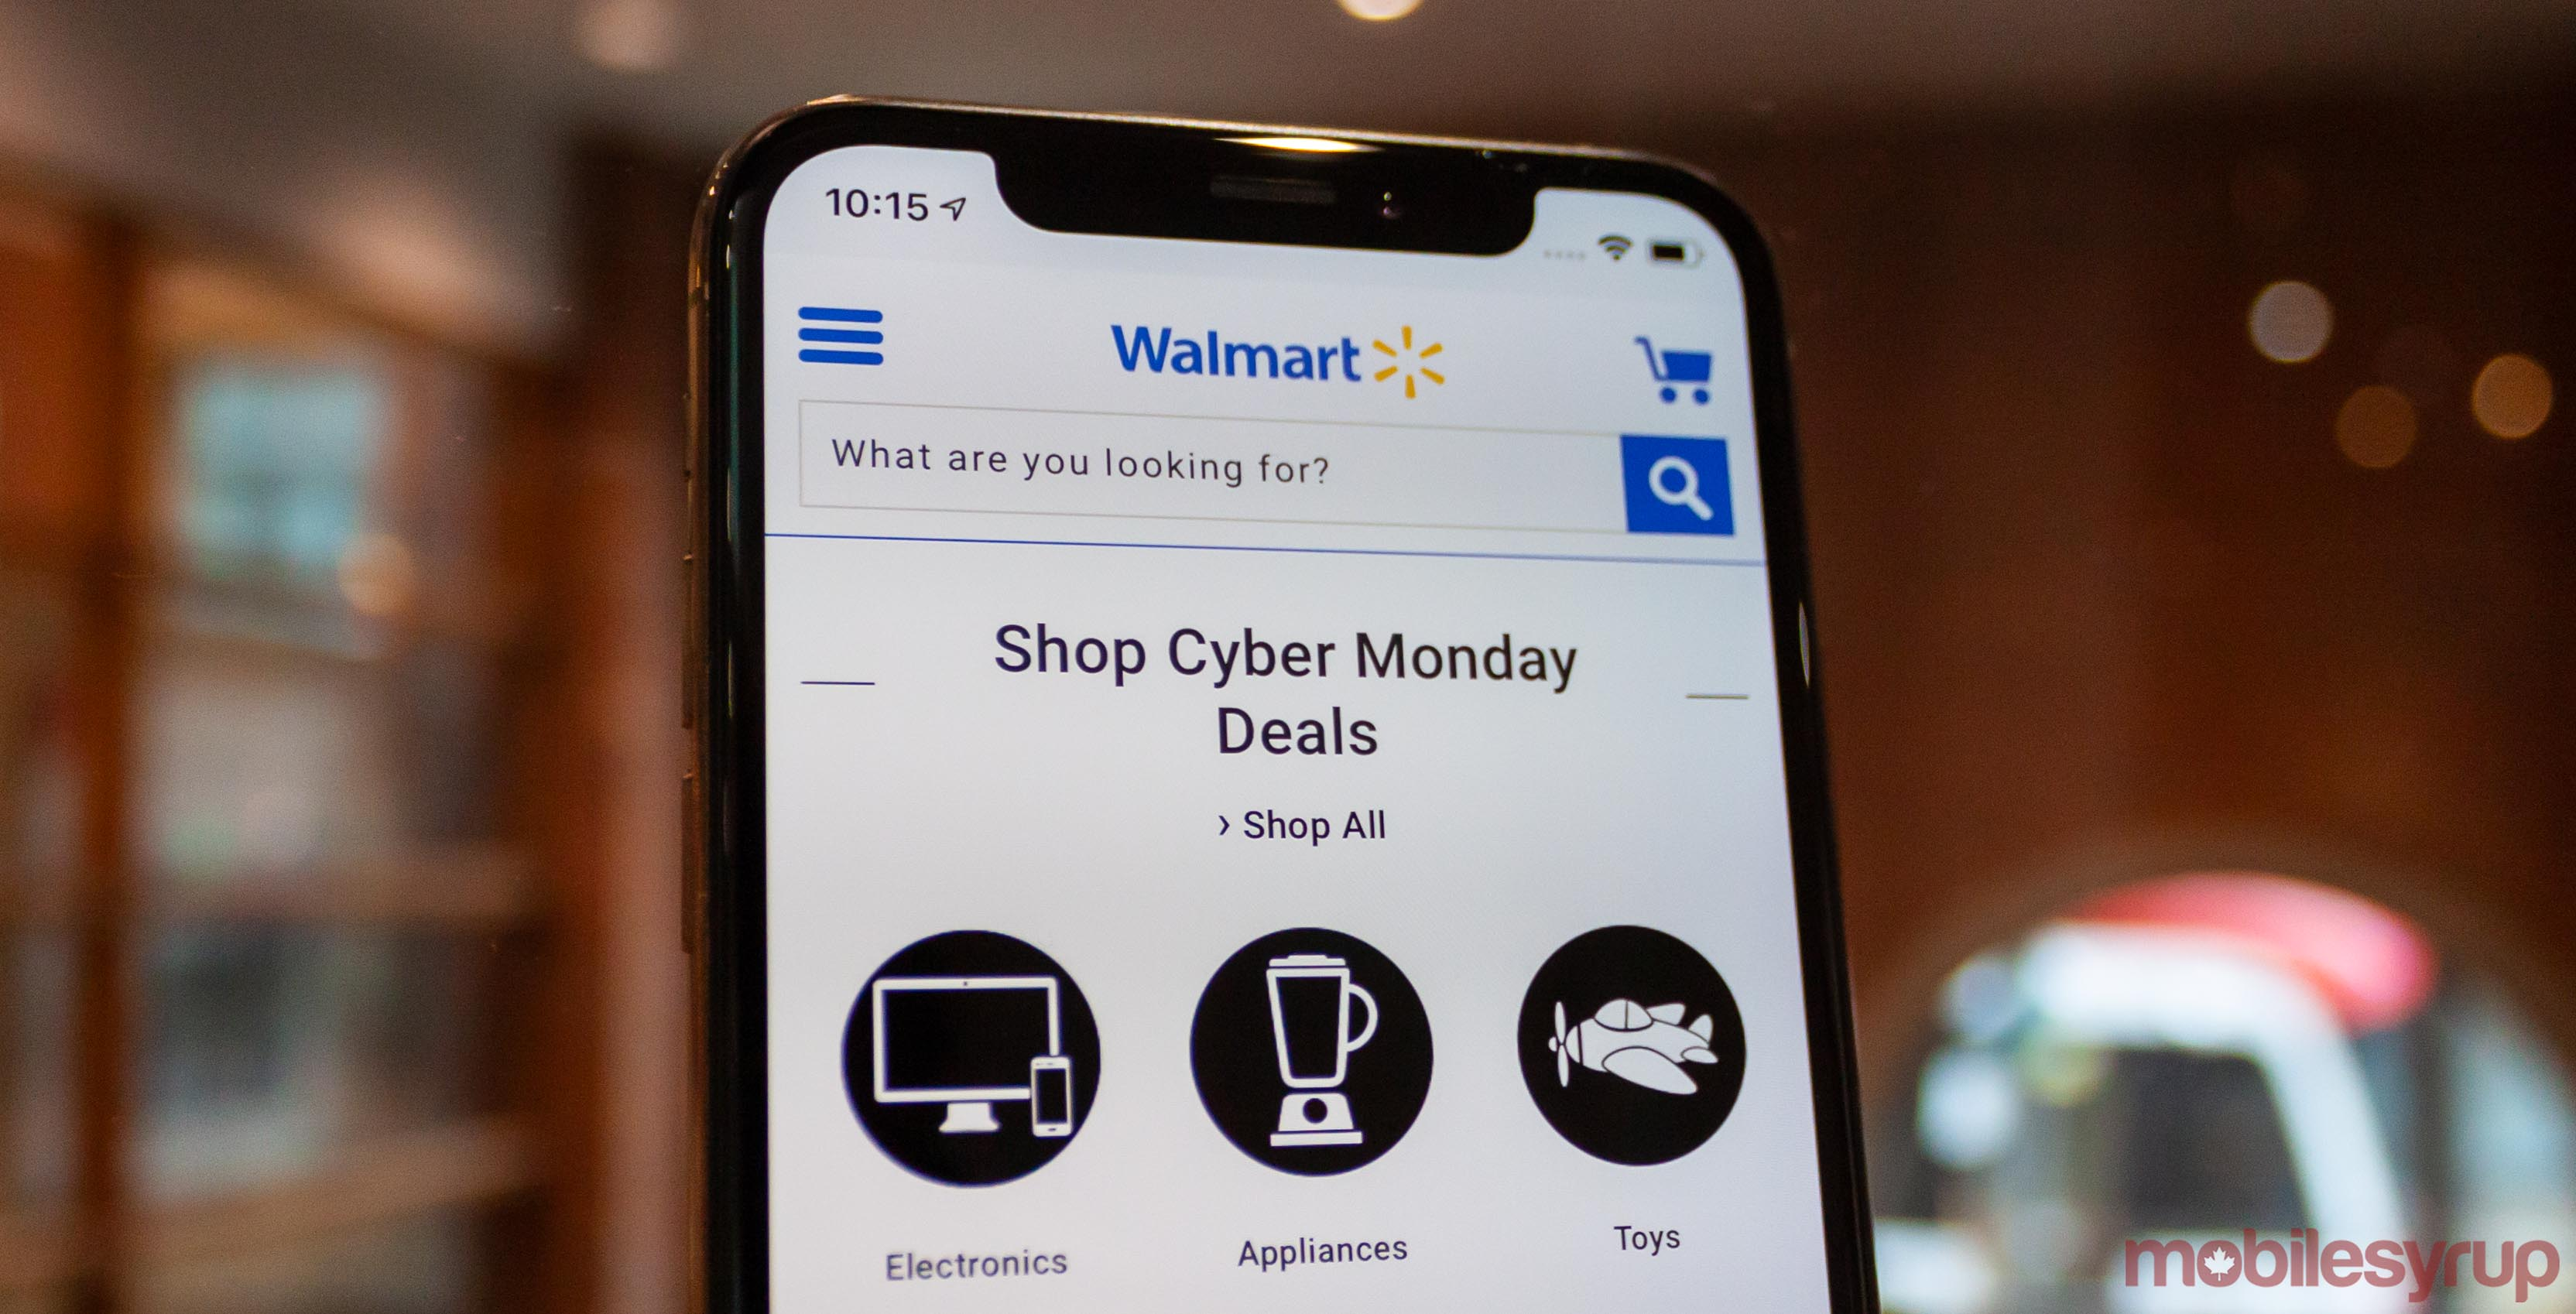 5da7ed8abcb Walmart Canada is back again with the sales for Cyber Monday and there is  at least one good deal for the Nintendo Switch. We've summarized the flyer  and ...